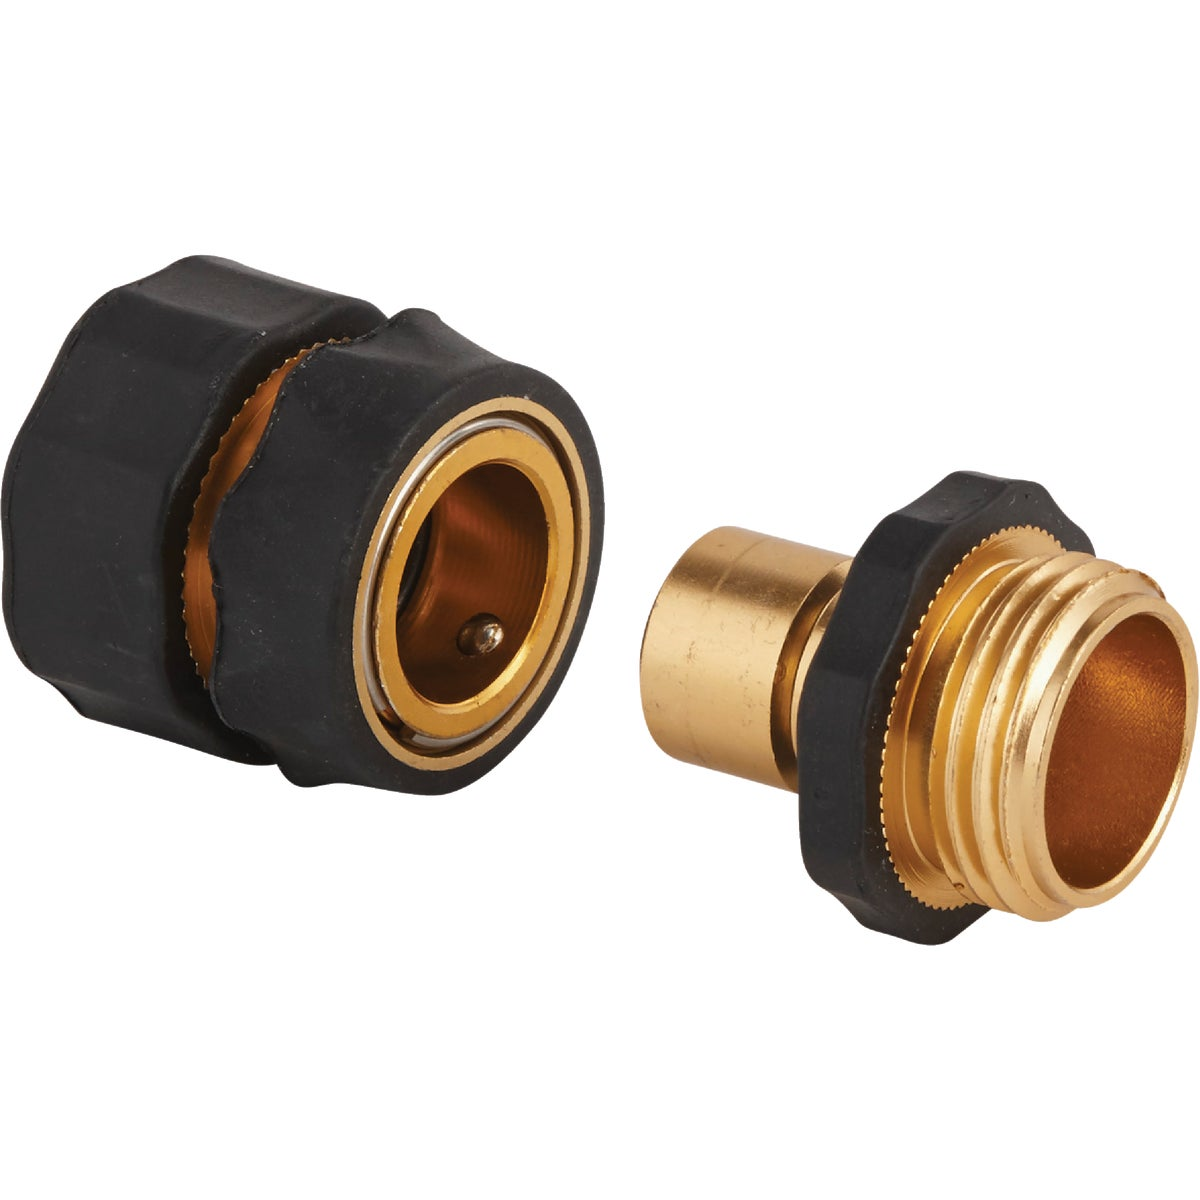 QUICK BRASS COUPLER SET - DIB09QC by Bosch G W